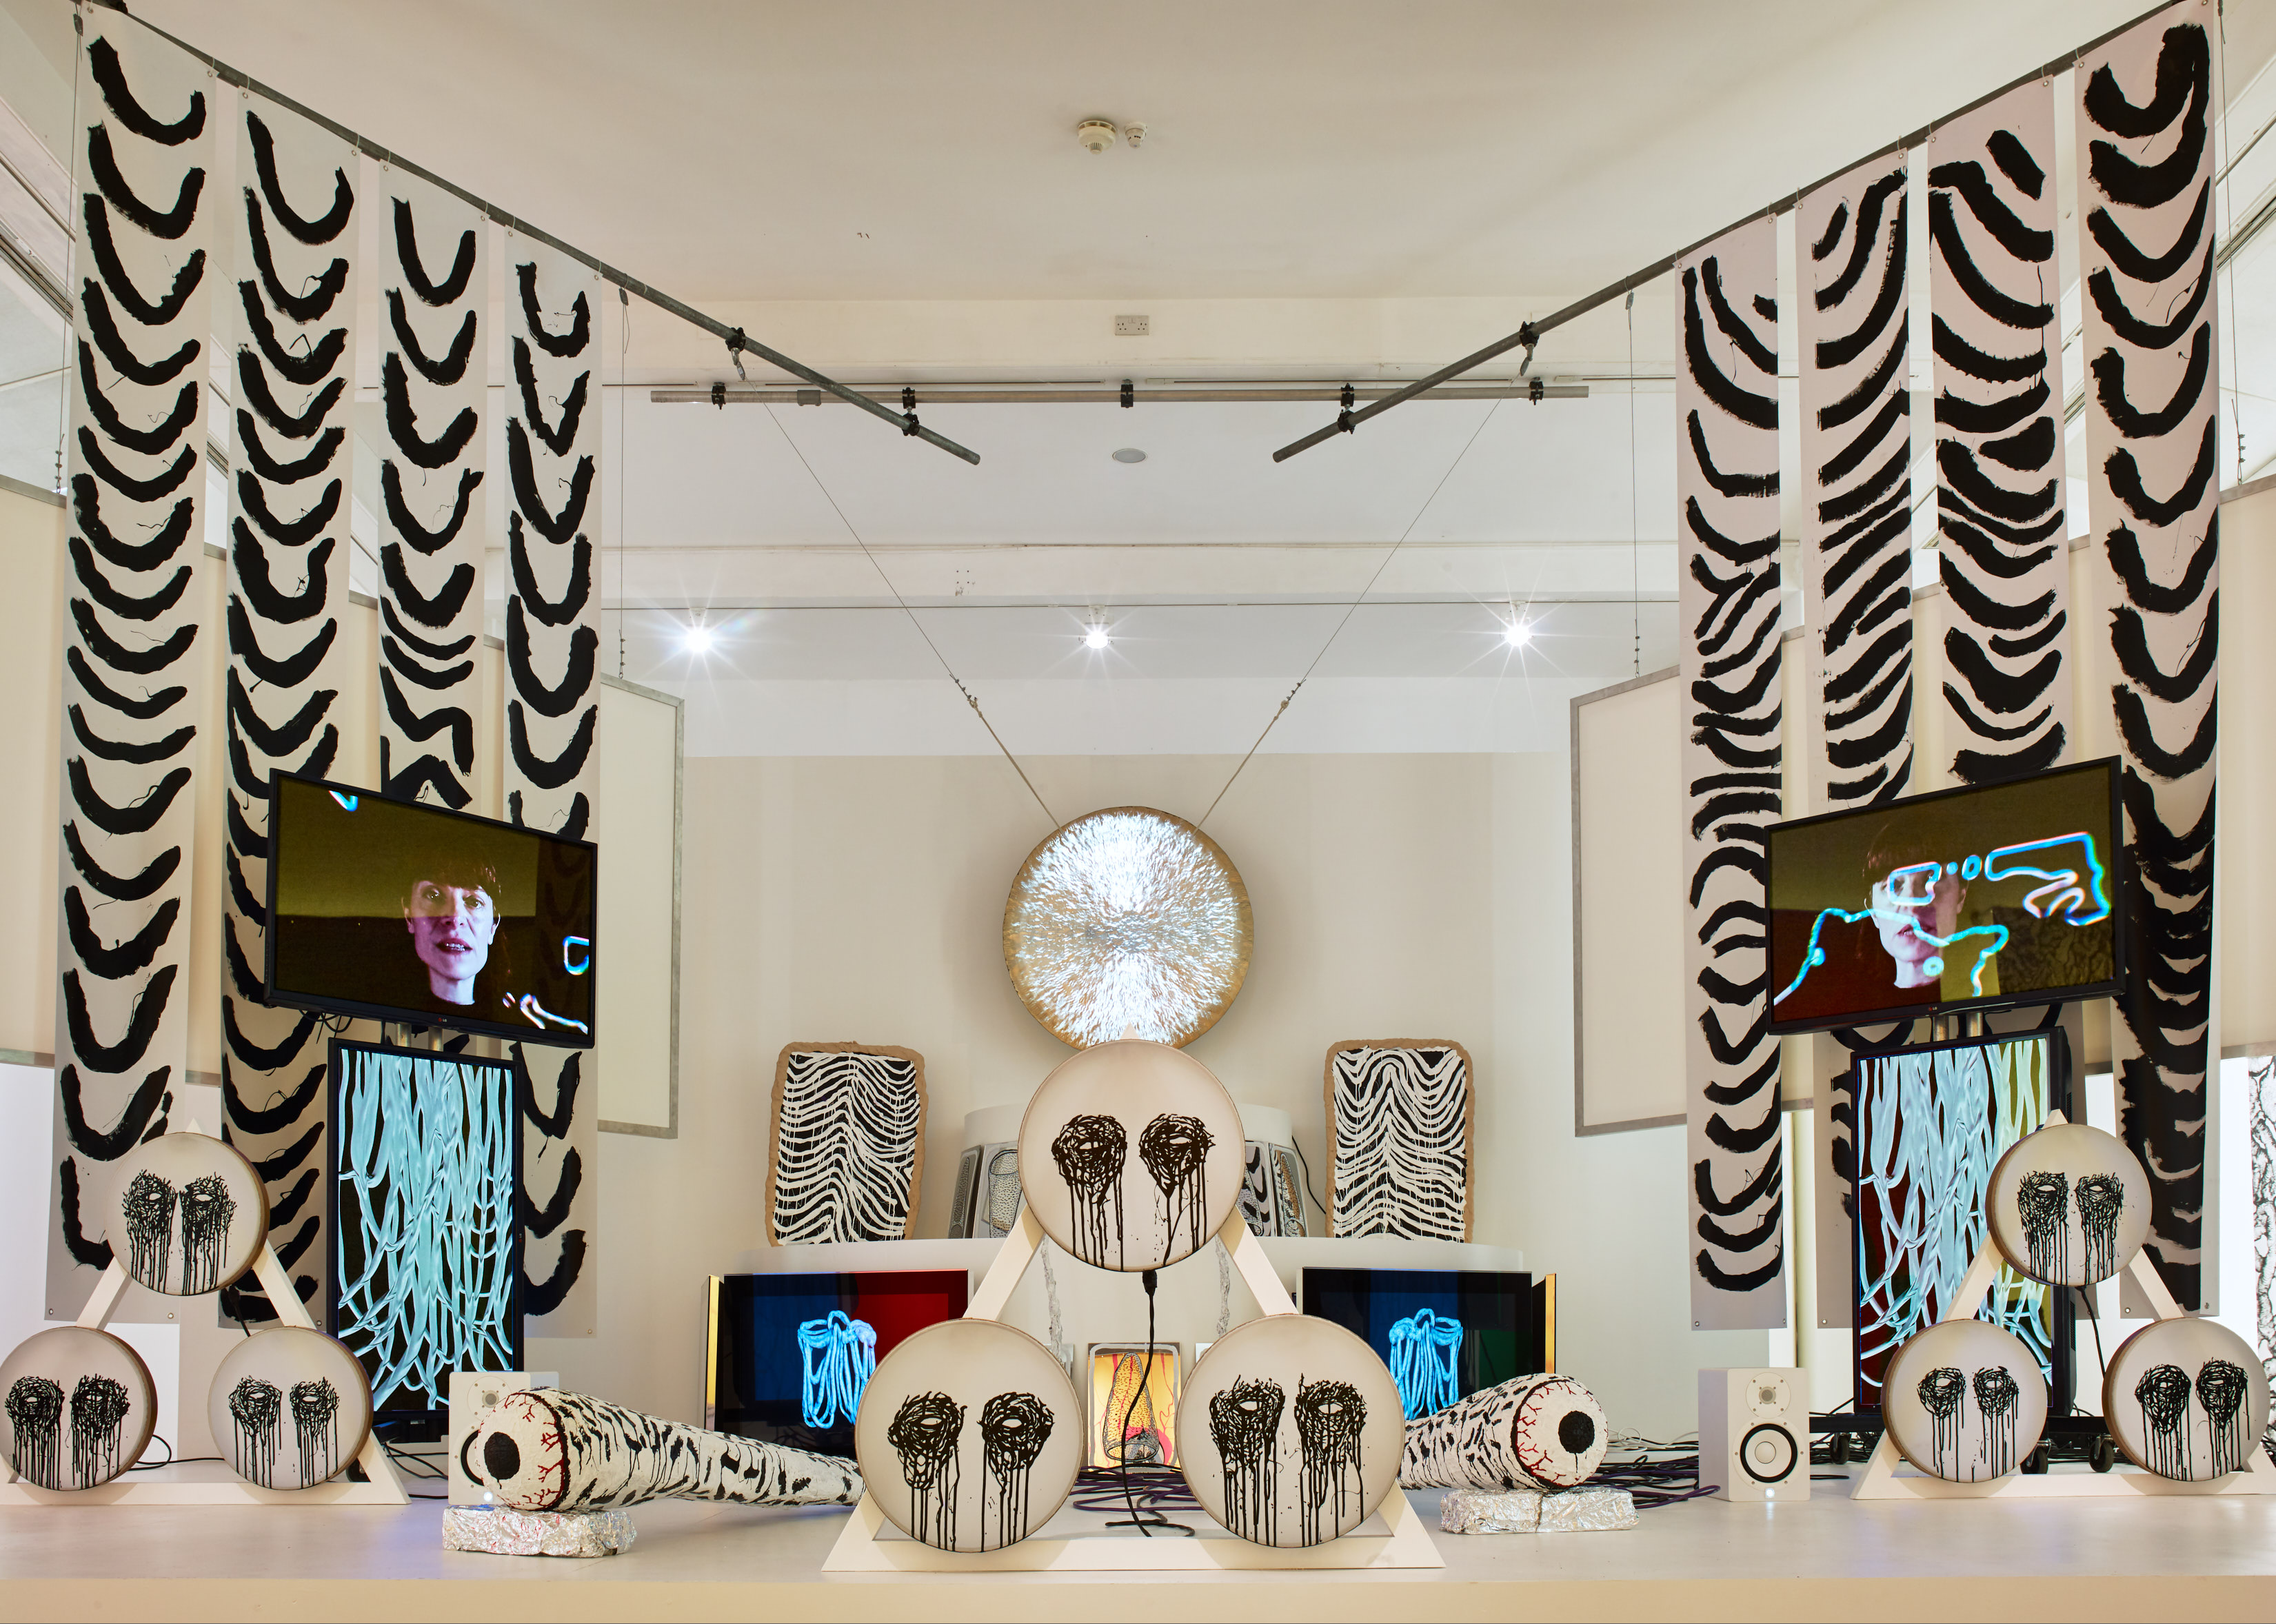 Benedict-Drew-The-Trickle-Down-Sydrome-Installation-View